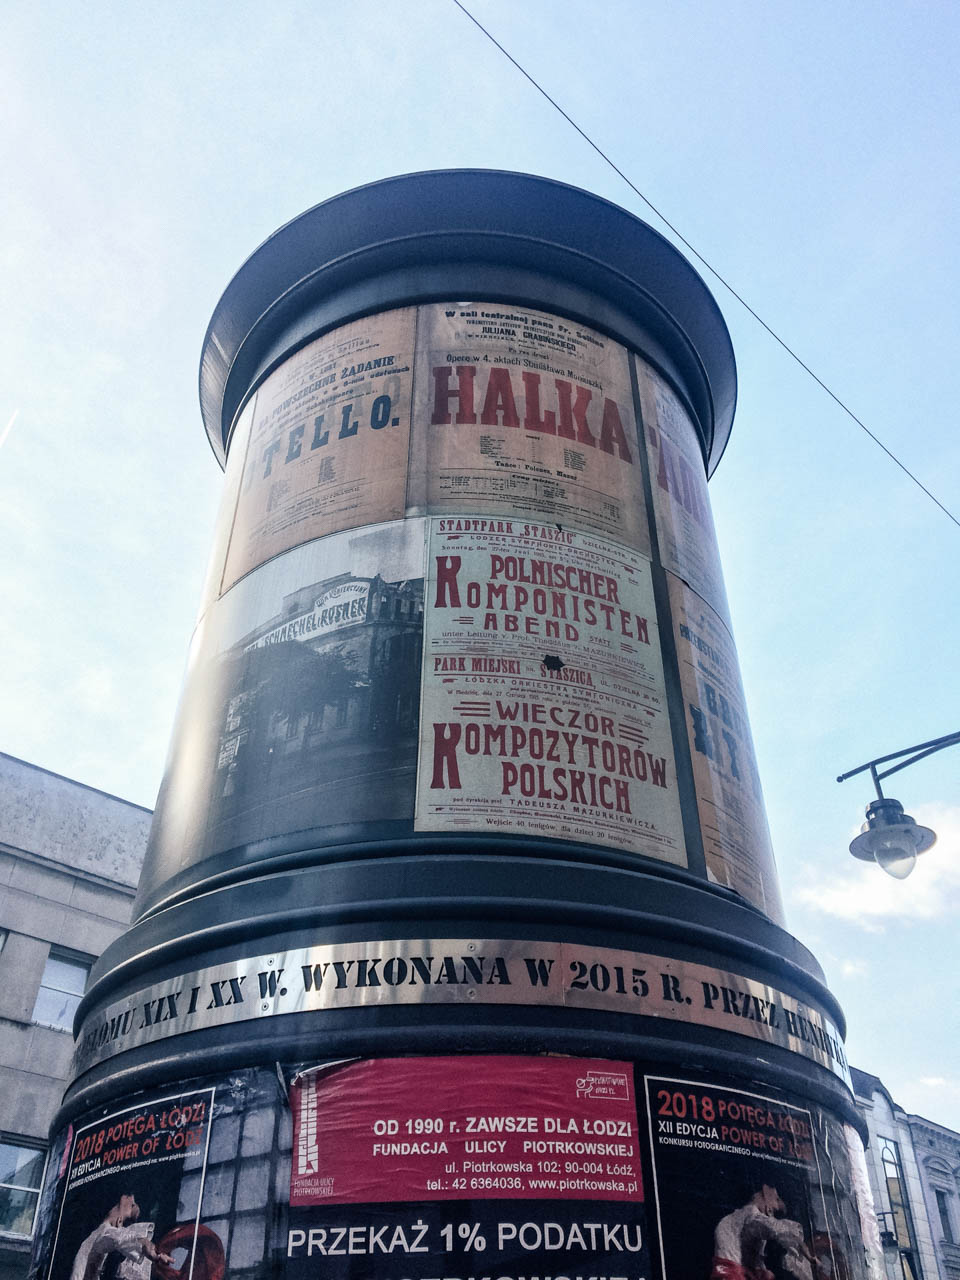 An advertising column in vintage style